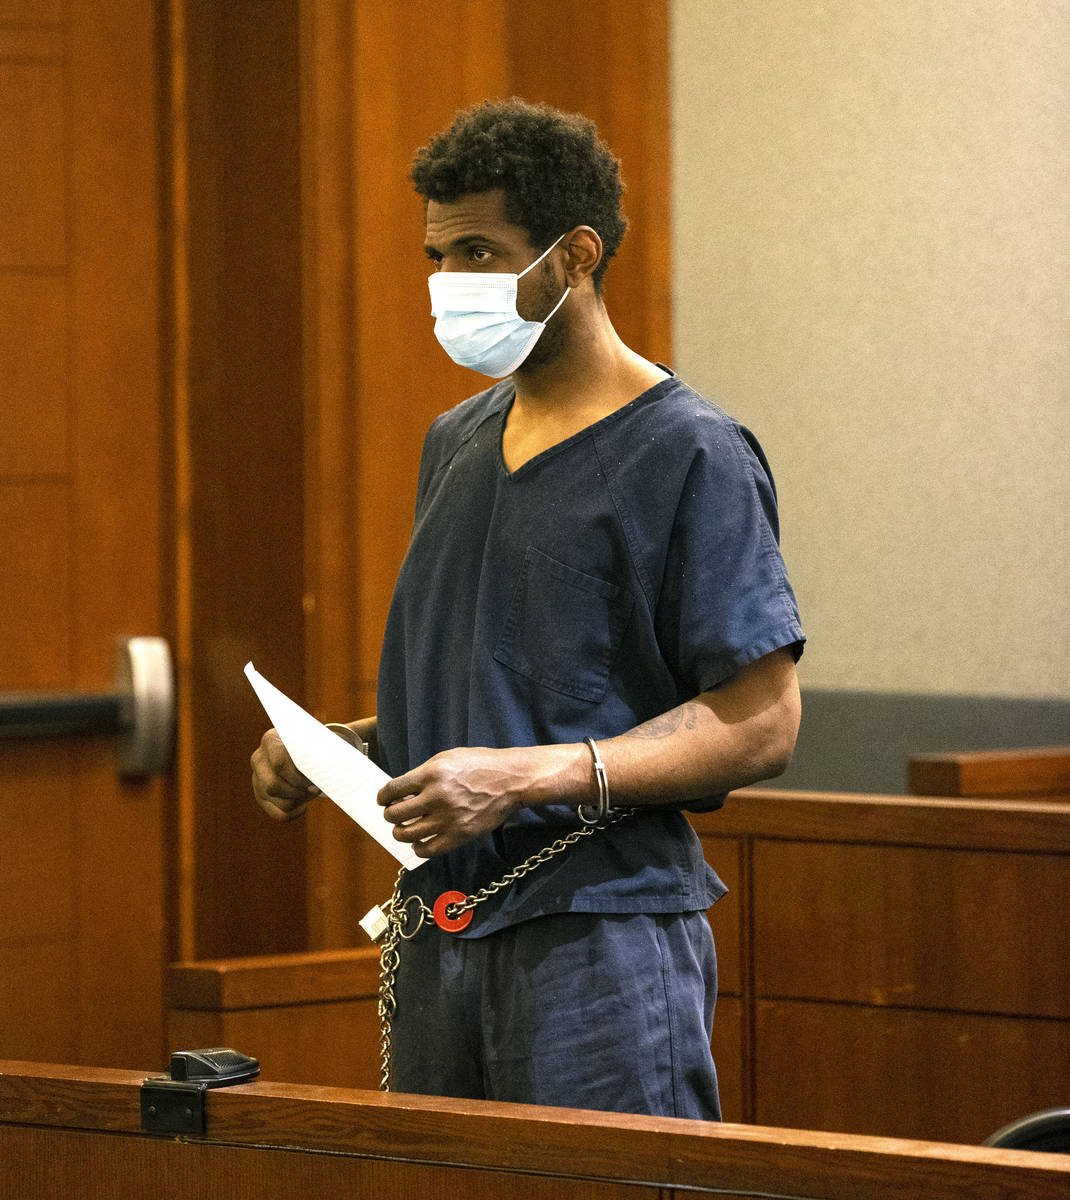 Brandon Leath, accused of punching and killing a man on the Strip, appears in court at the Regi ...